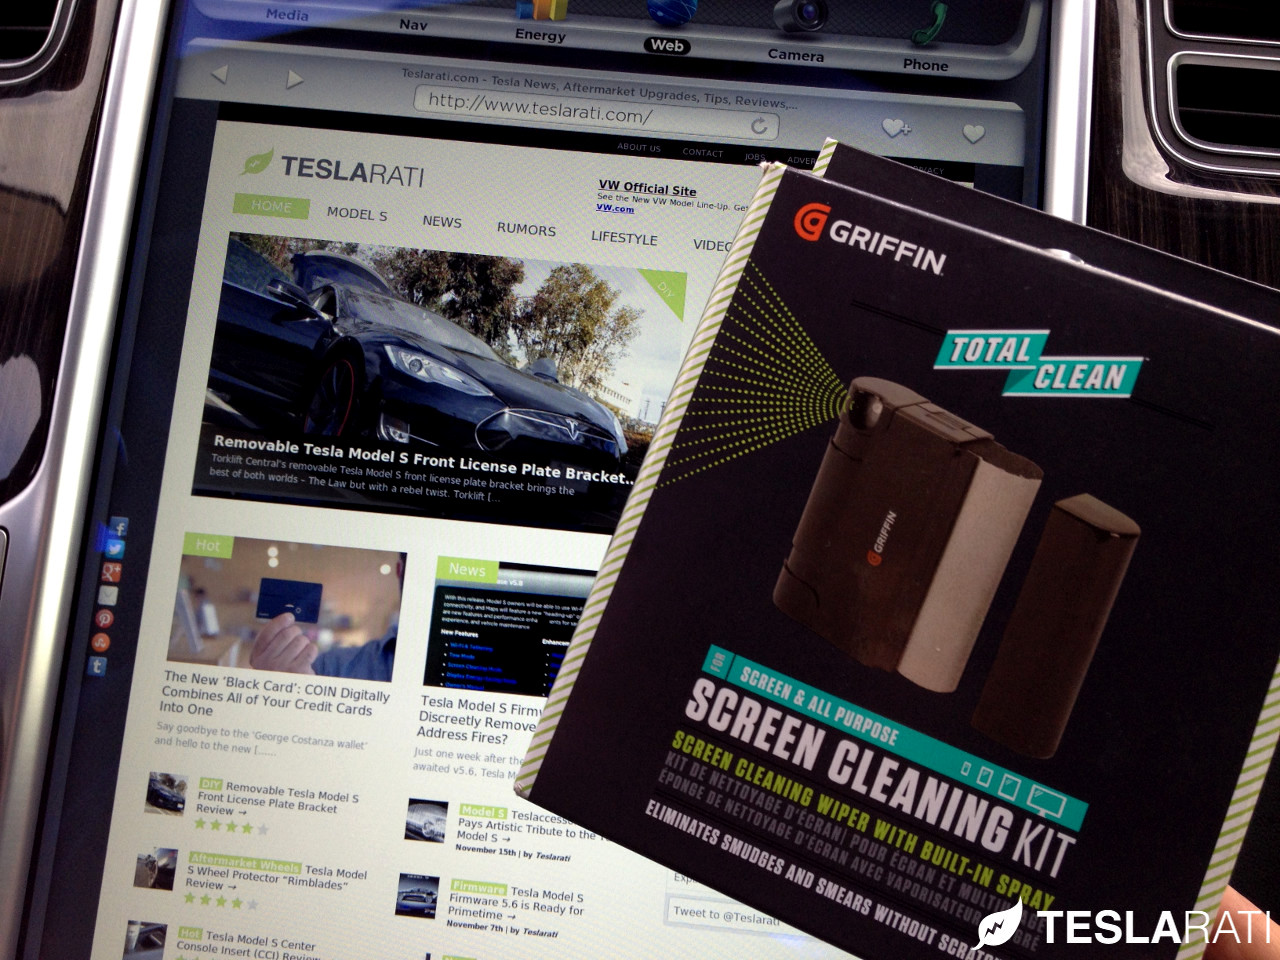 Griffin-Screen-Cleaning-Kit-Tesla-Model-S